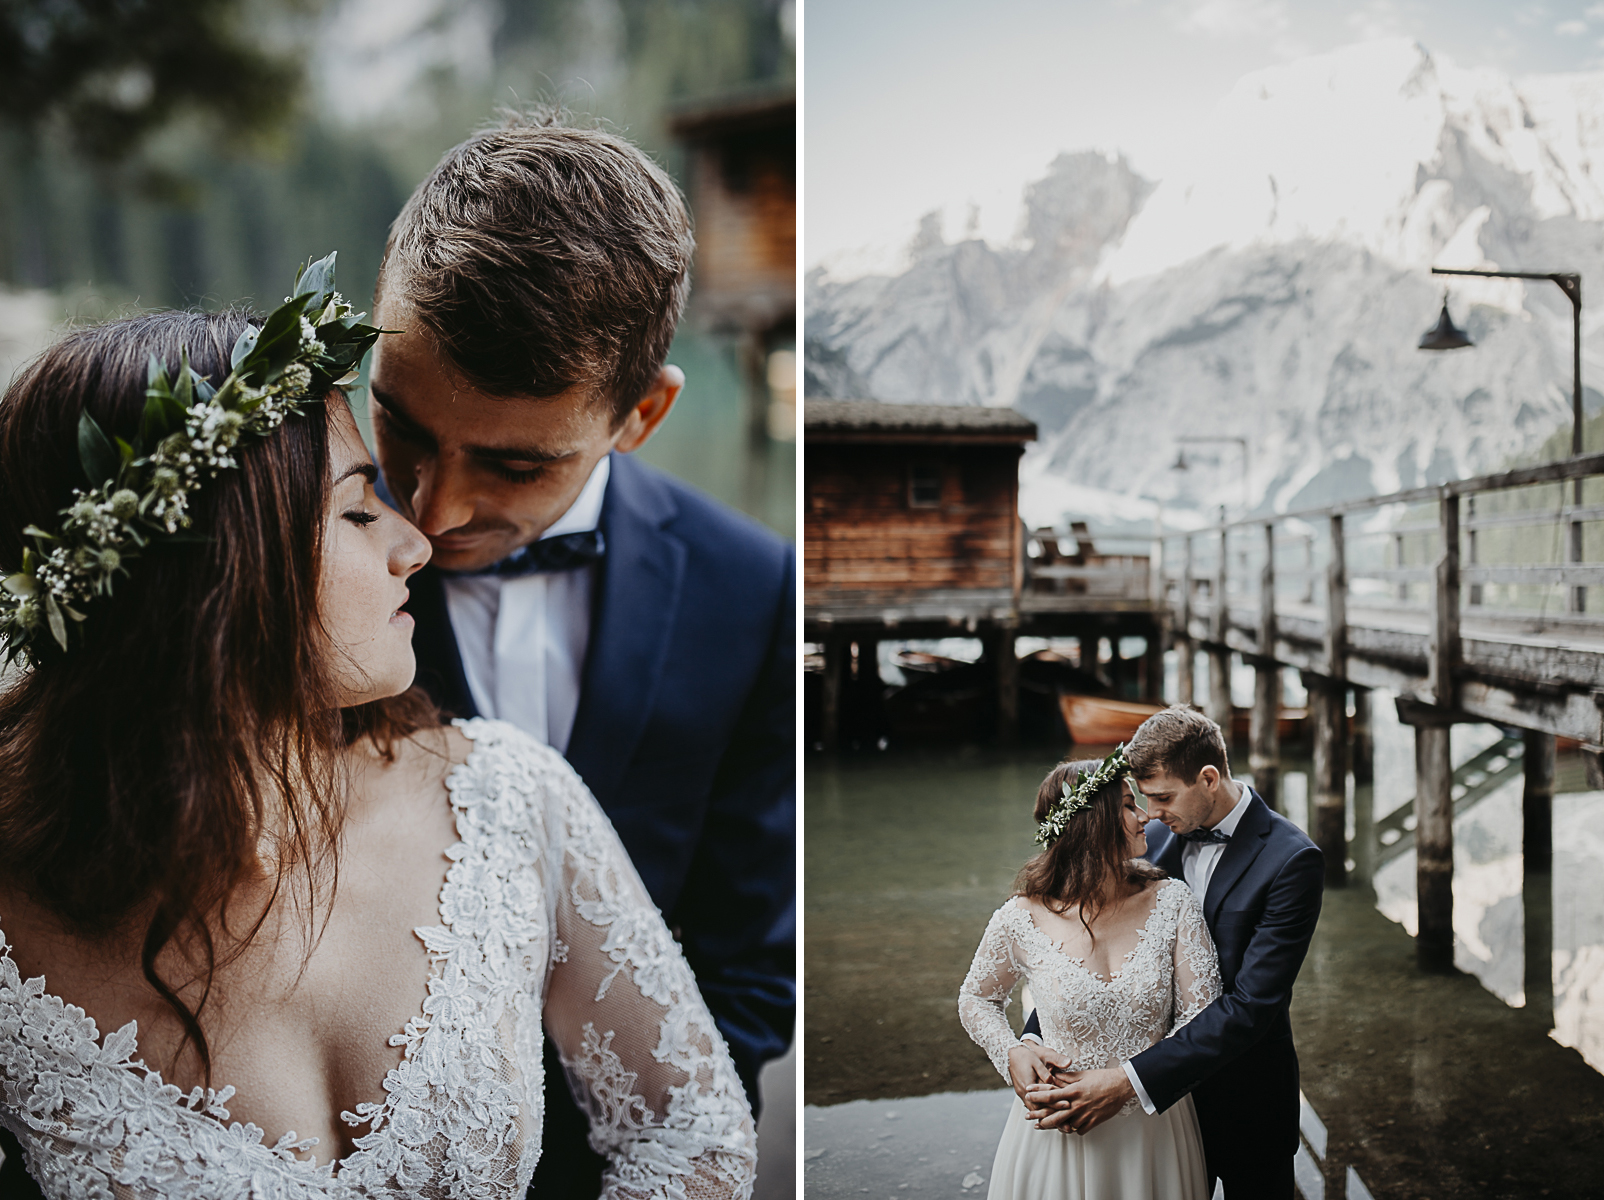 Sesja ślubna w Dolomitach_wedding session in Dolomites-014